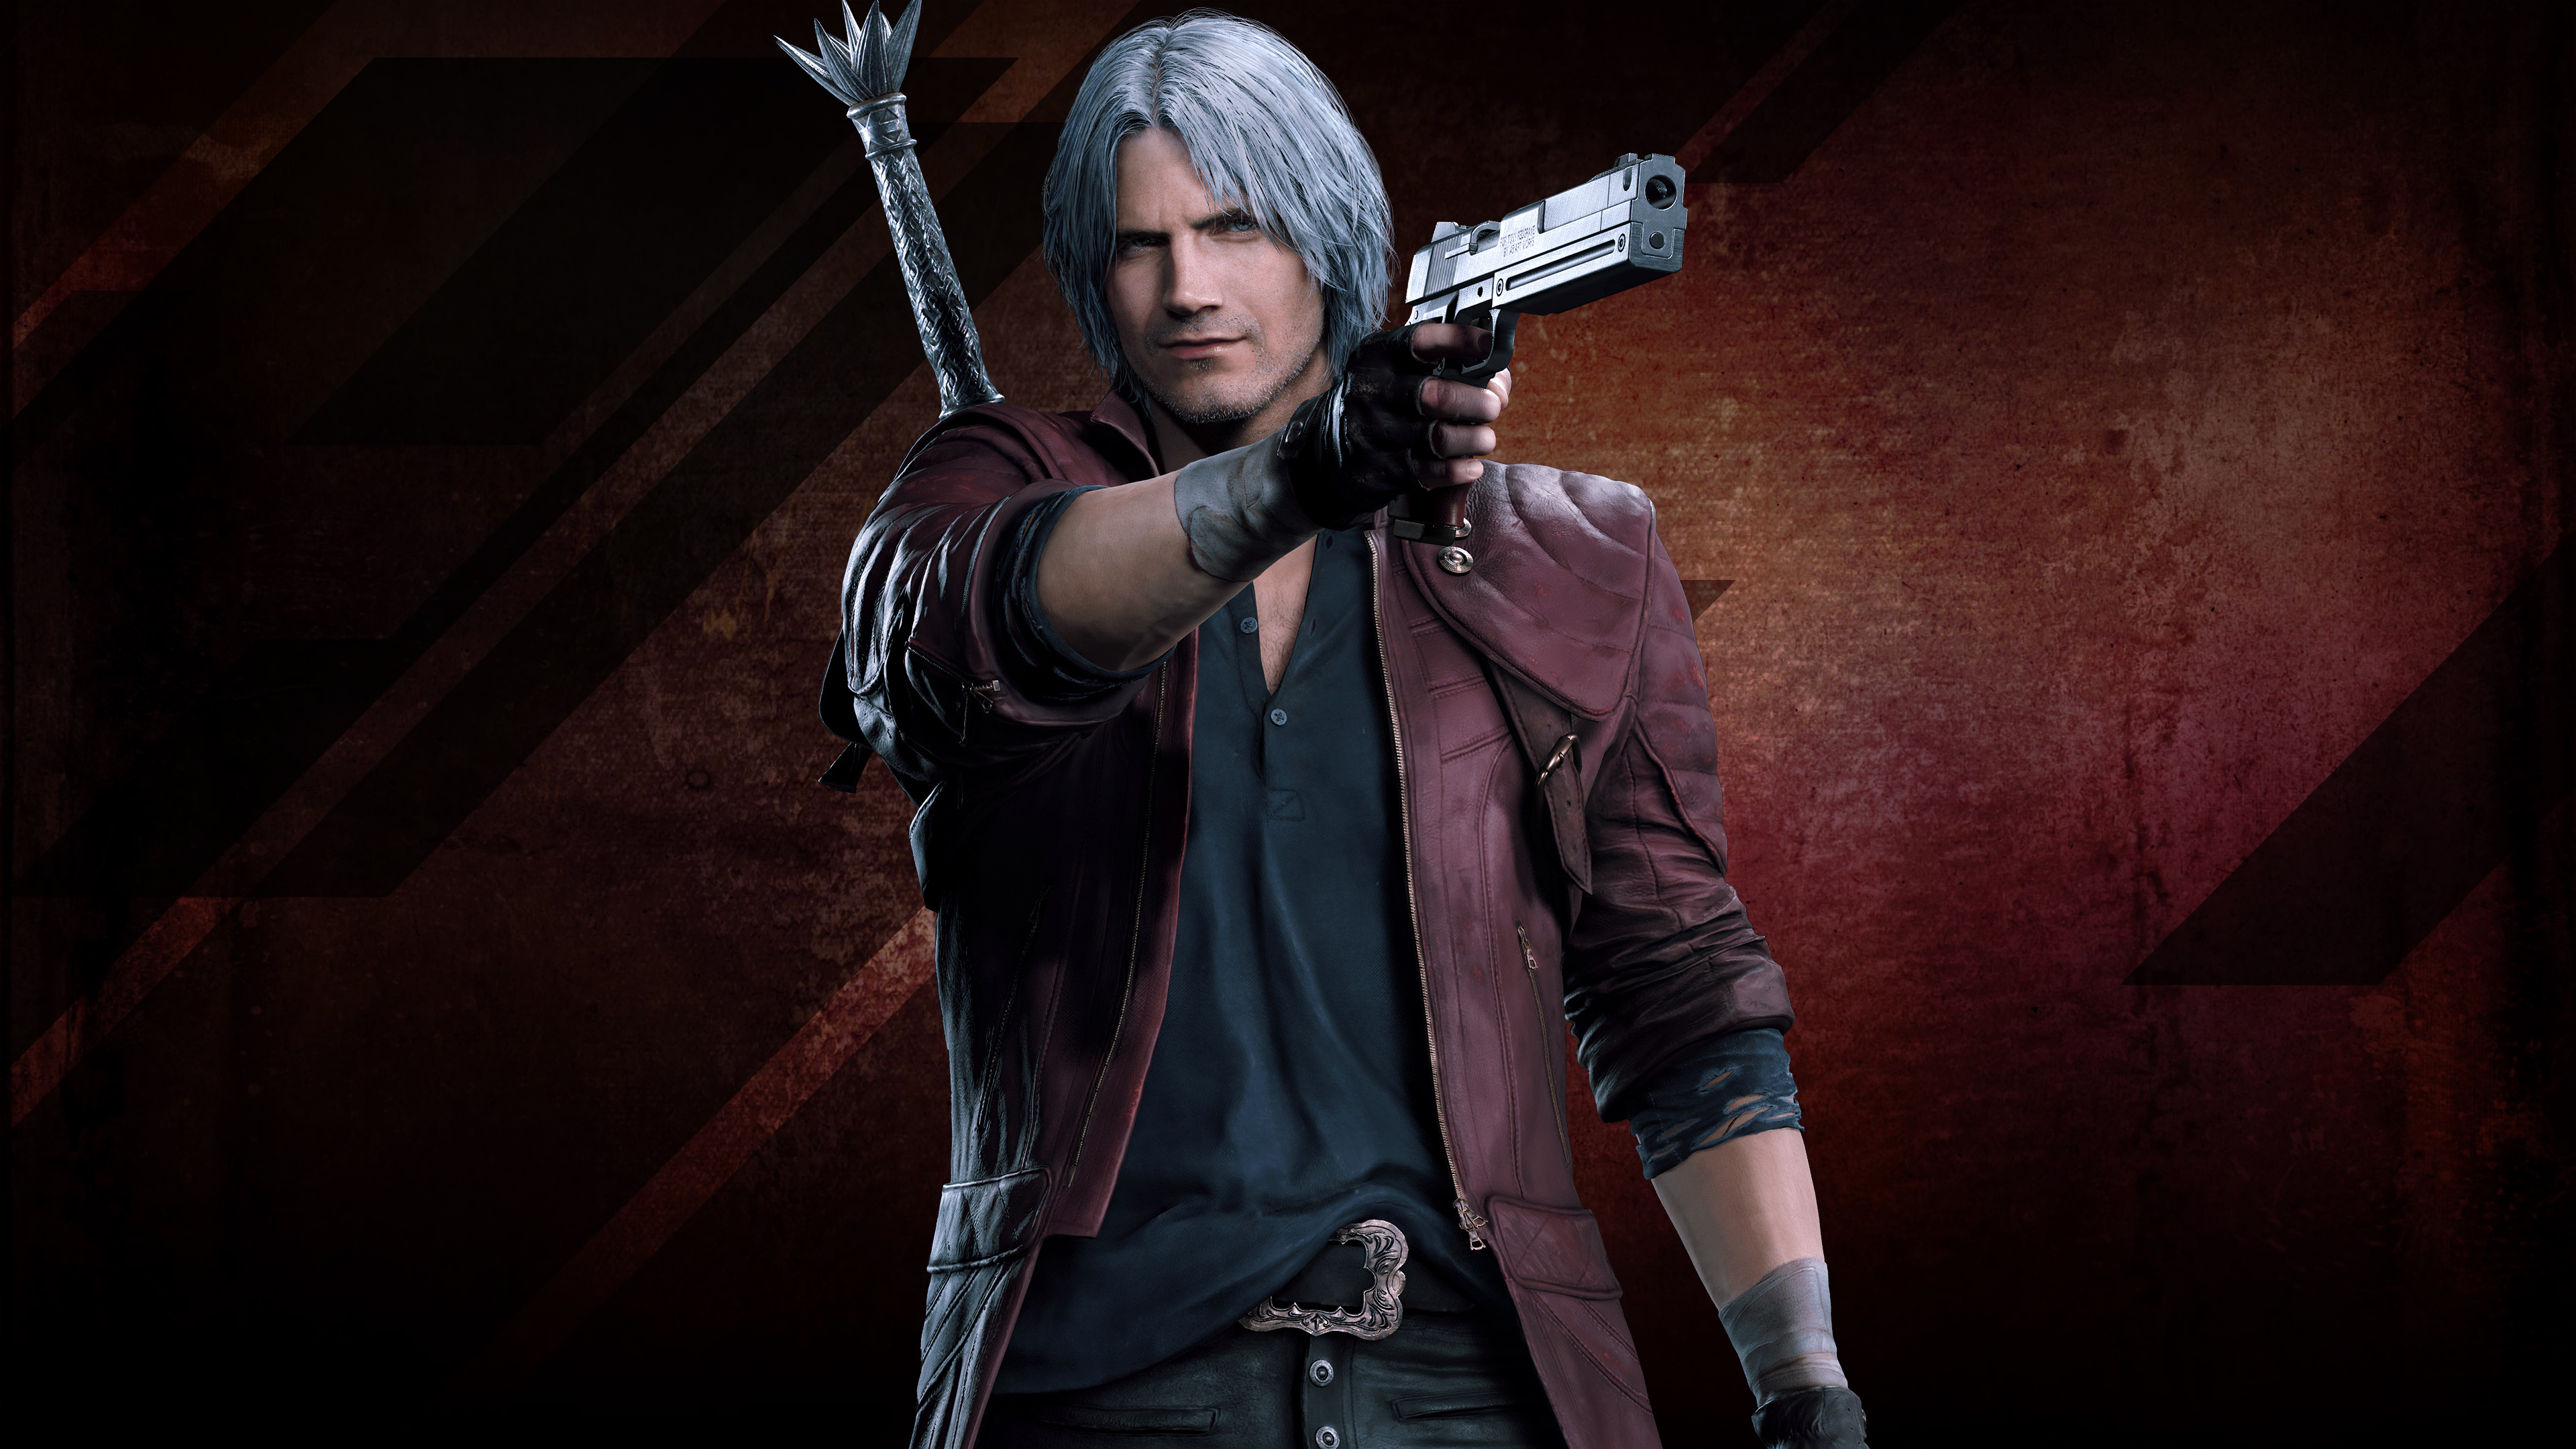 Devil May Cry Dante Wallpaper Posted By Ryan Sellers